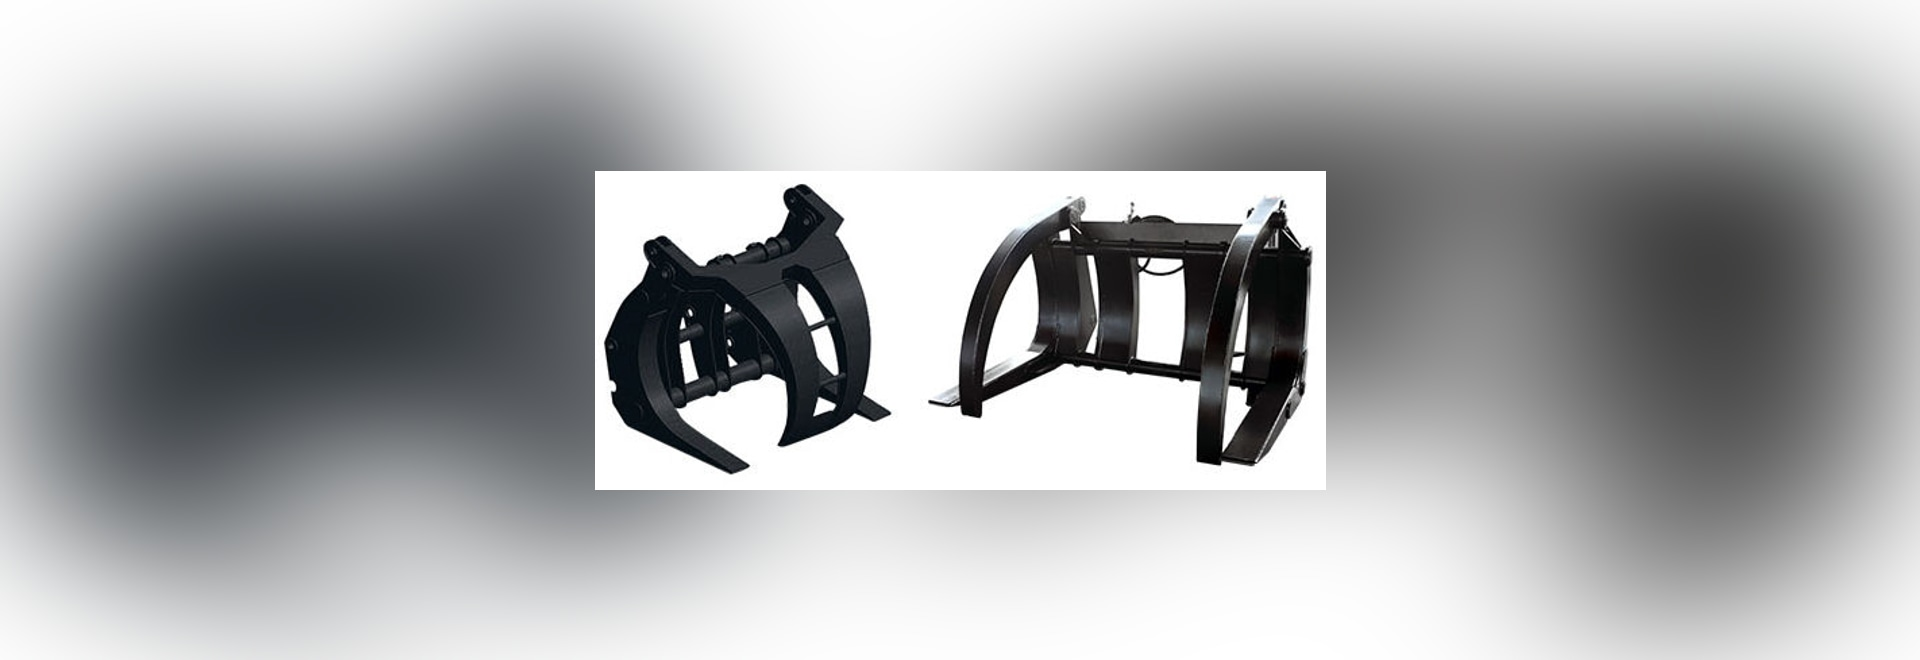 NEW: log grapple by DAEWOO Construction Equipment Division